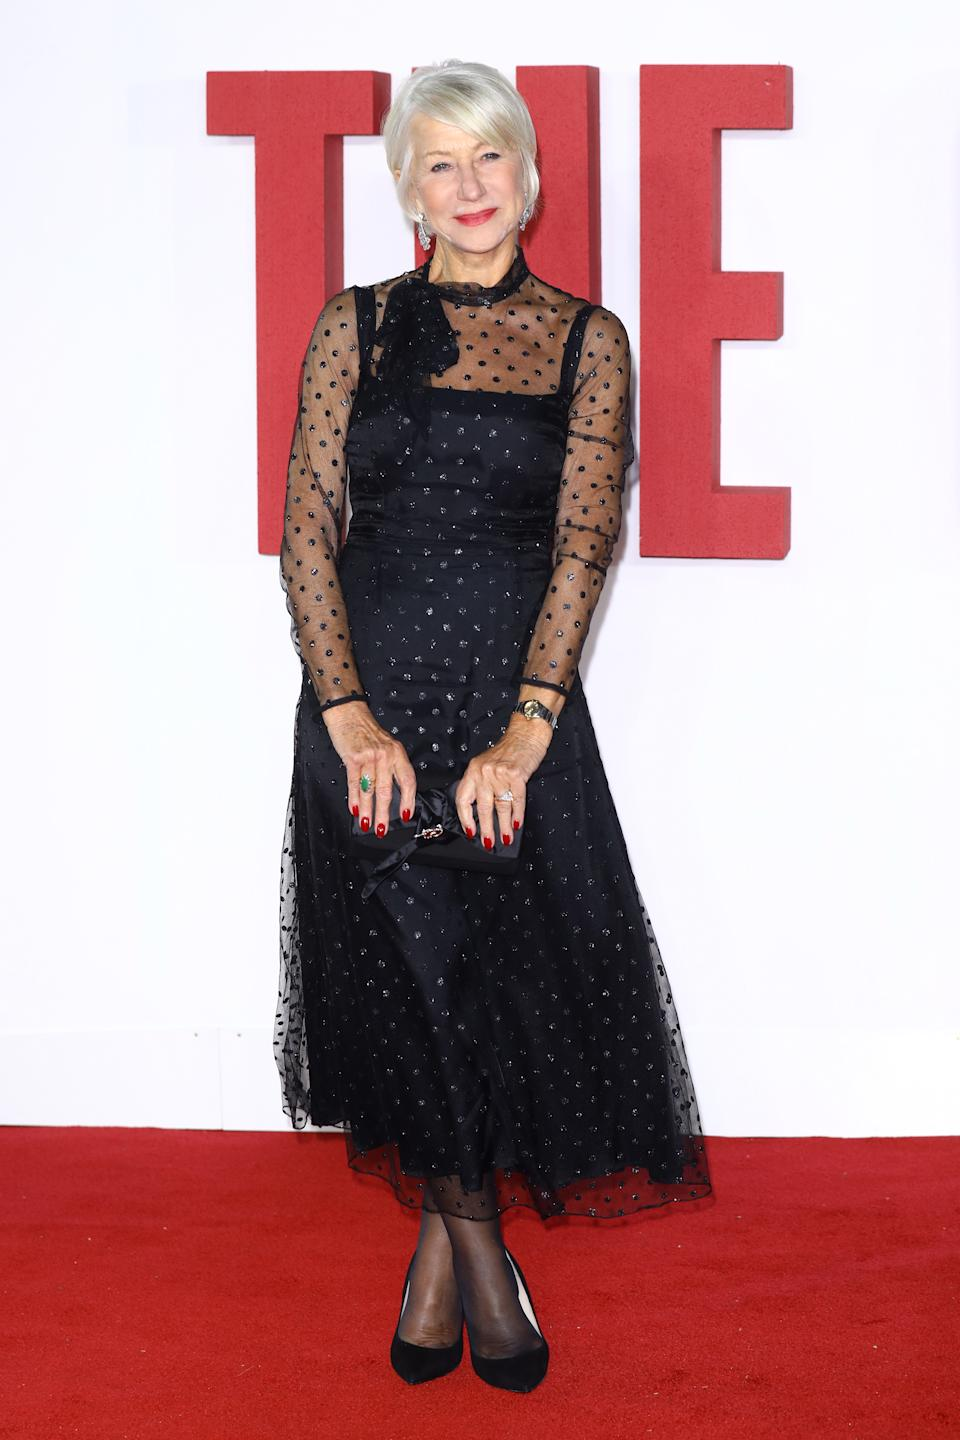 """Helen Mirren wore a glitter polka dot dress with tulle overlay by Goat. The dress is available to <a href=""""https://fave.co/2BRAWVh"""" rel=""""nofollow noopener"""" target=""""_blank"""" data-ylk=""""slk:buy for £1,200"""" class=""""link rapid-noclick-resp""""><strong>buy for £1,200</strong></a>. <em>[Photo: Getty]</em>"""